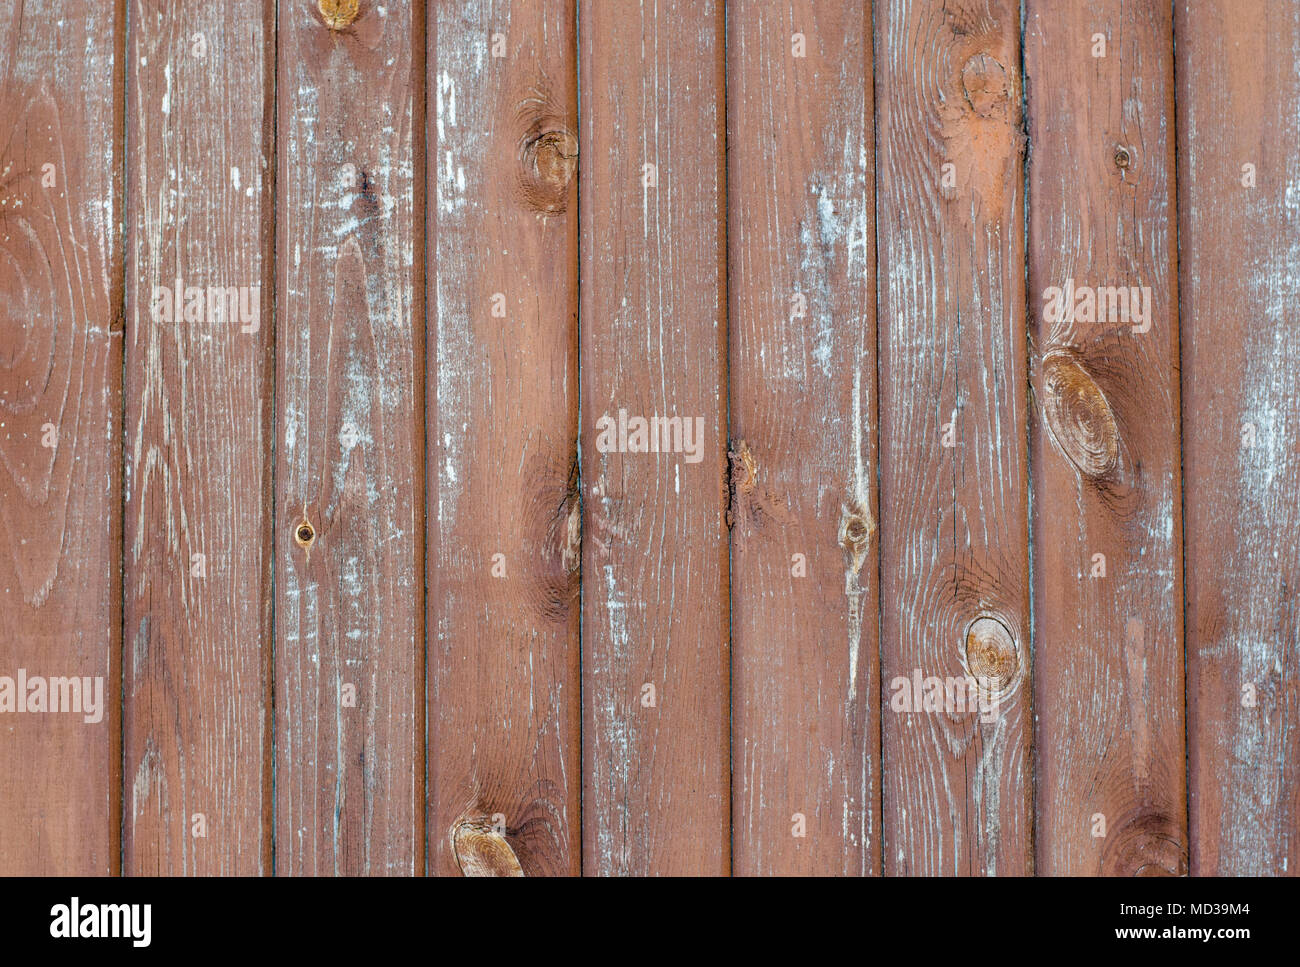 Vintage Rustic Weathered Barn Wood Background With Knots And Nail Holes